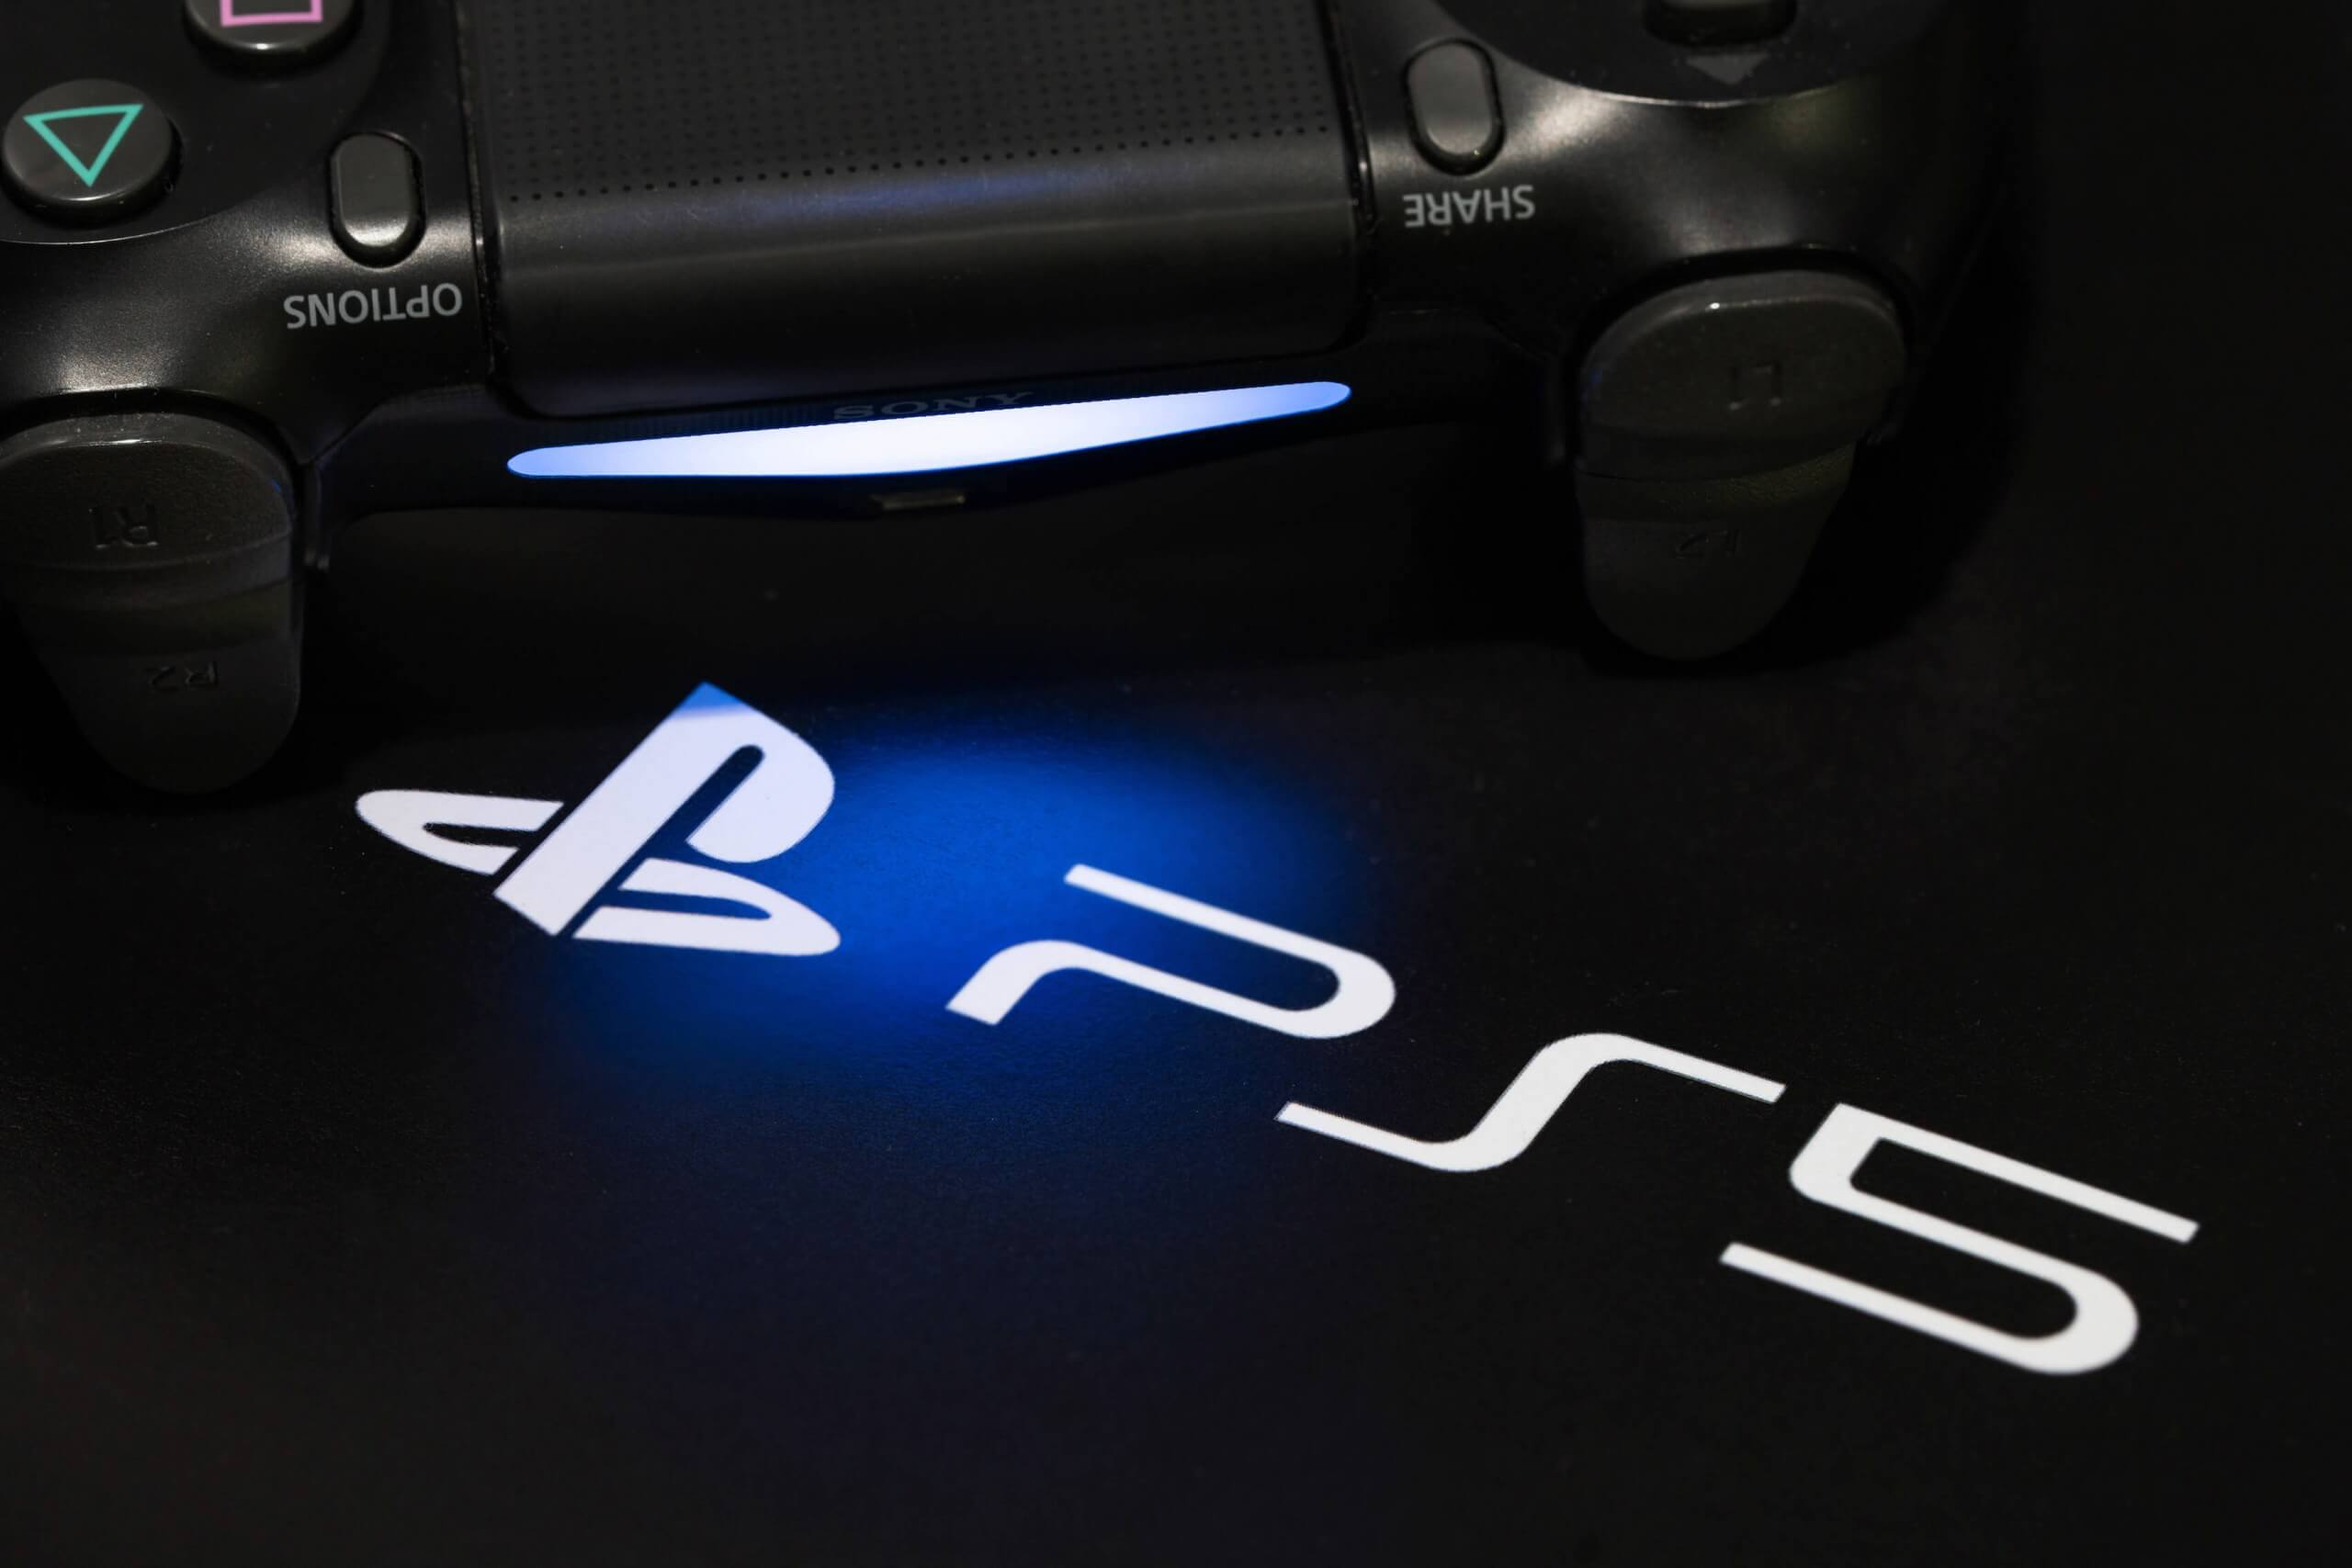 Sony rumored to be lowering PS5 price following Xbox Series X reveal